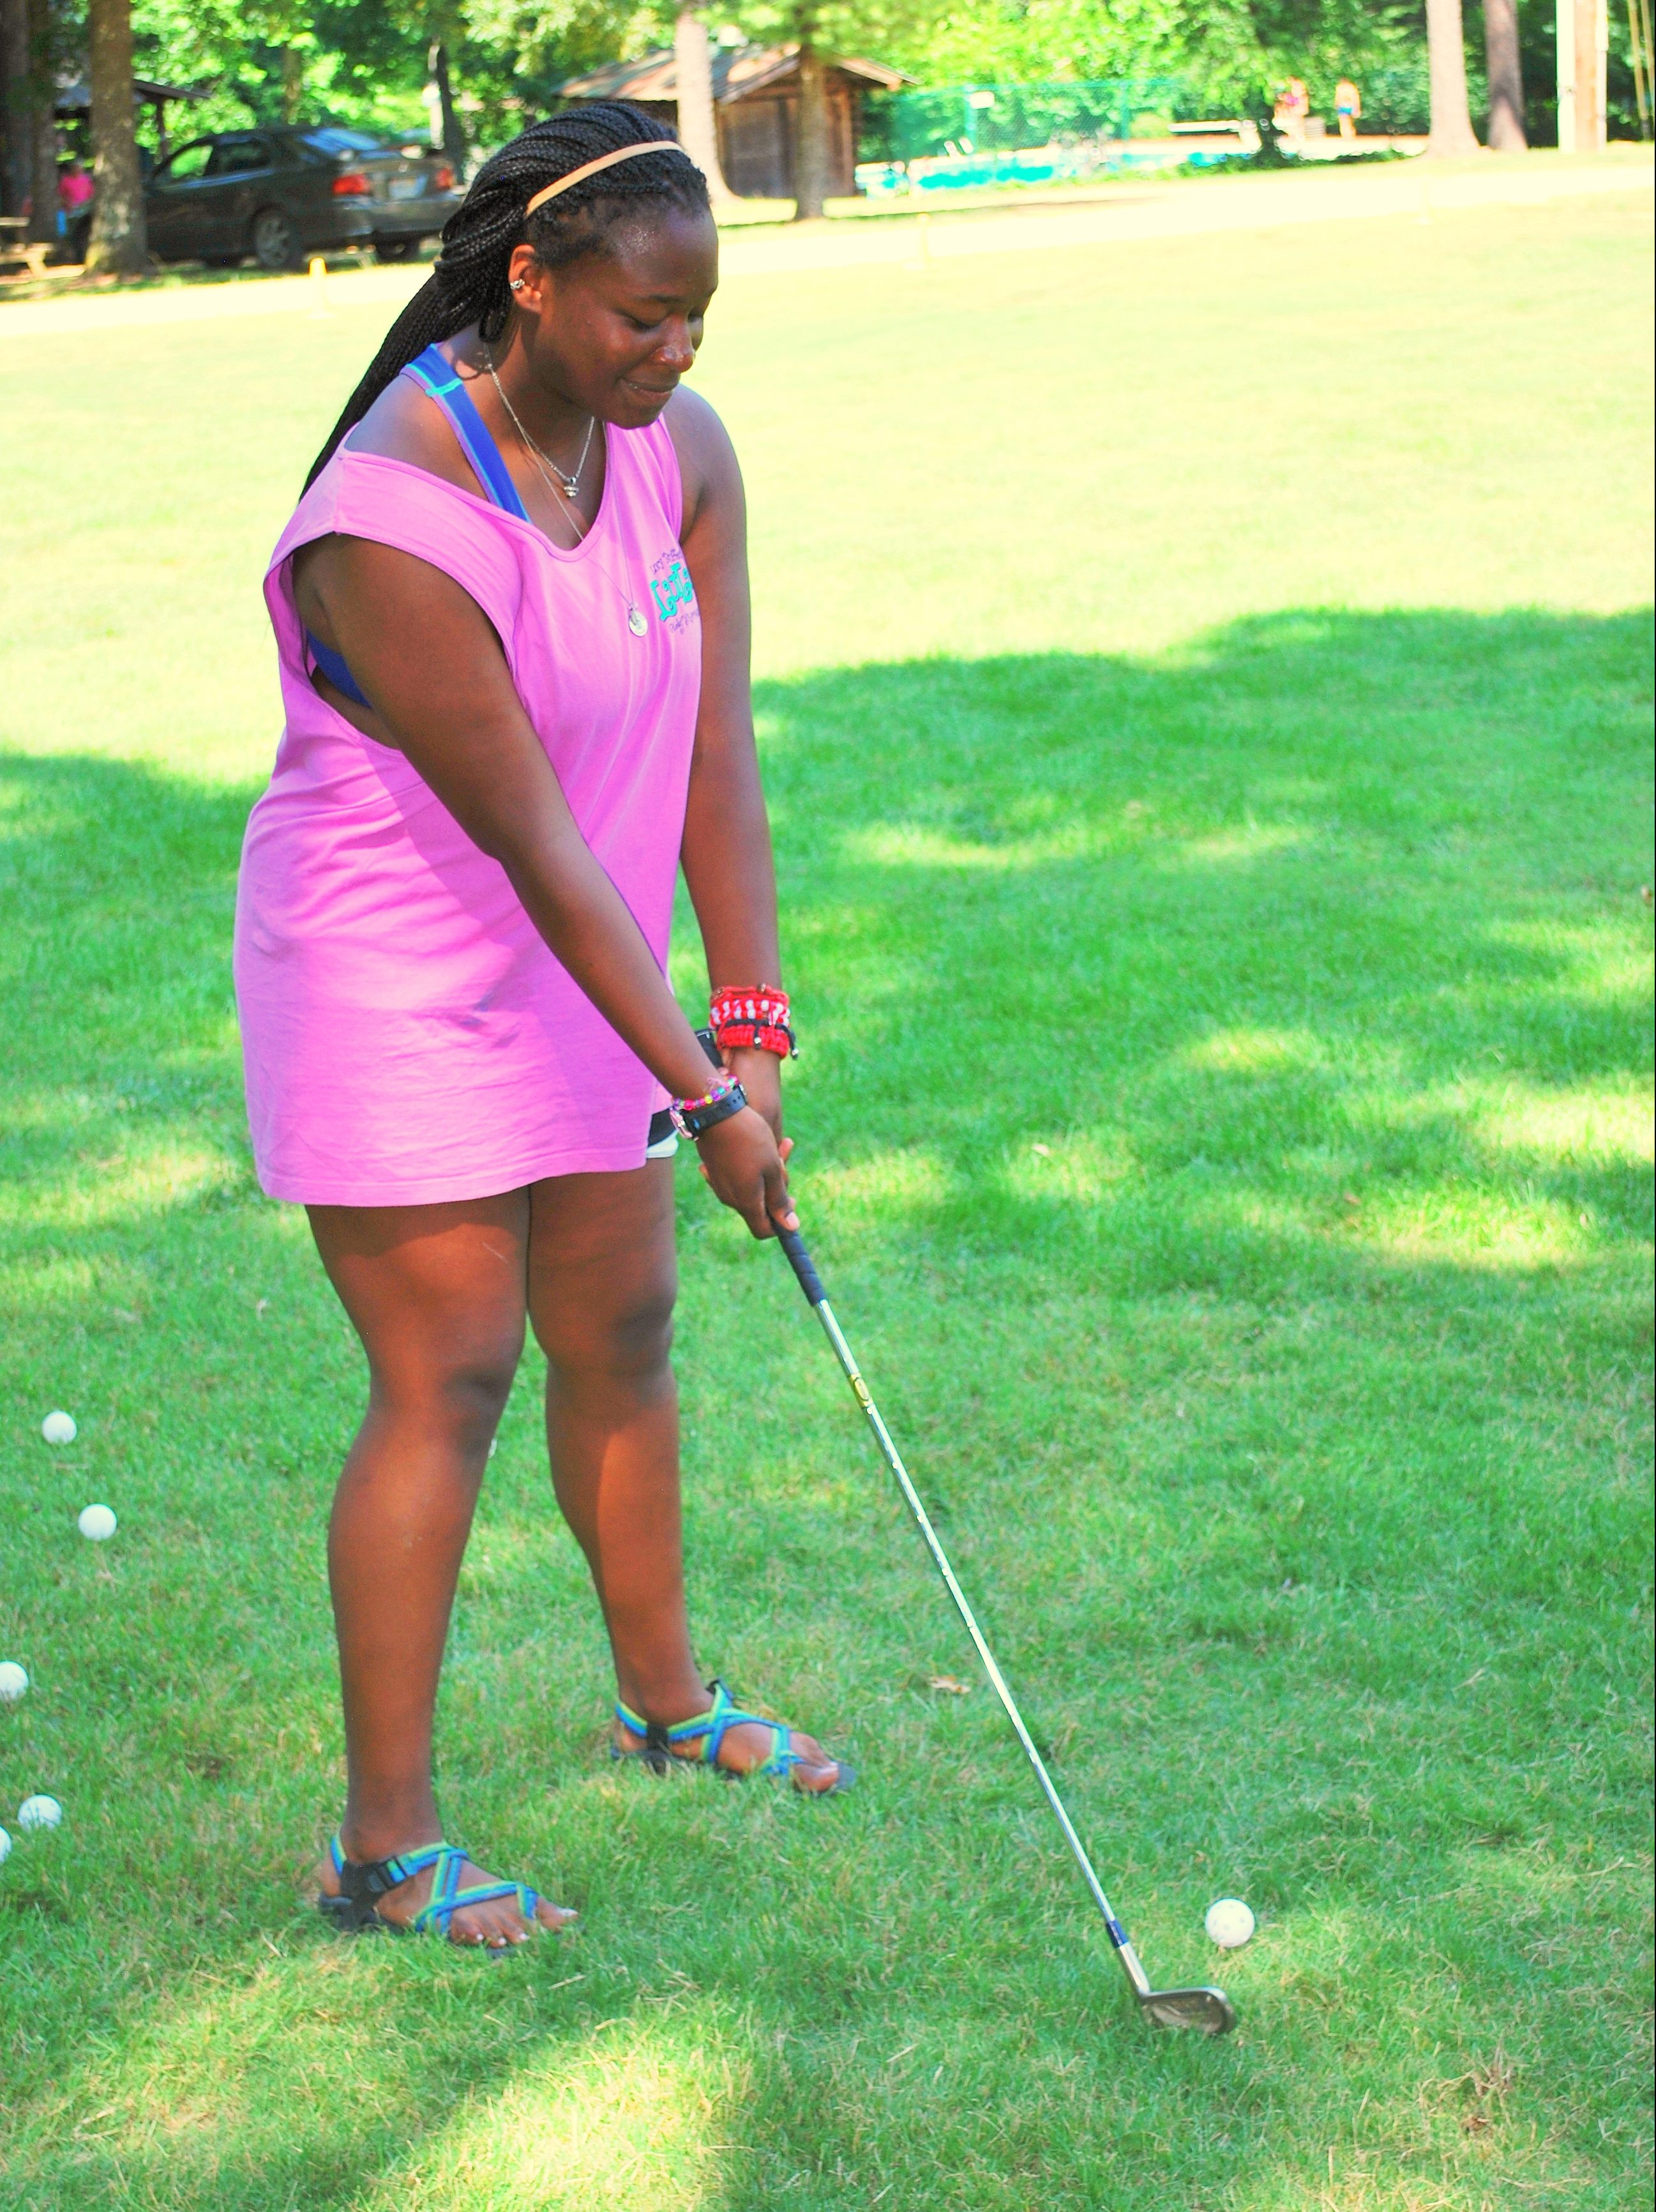 Golf at Riverview